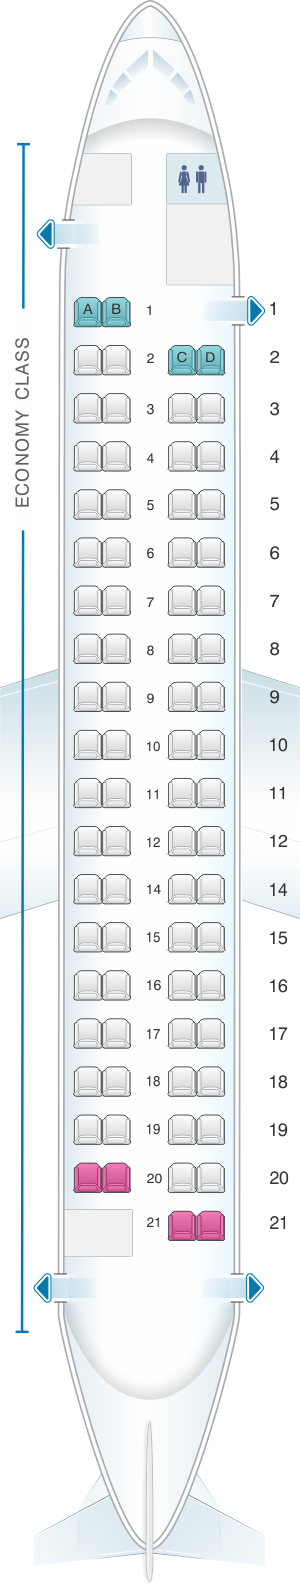 Seat map for airBaltic Bombardier Q400